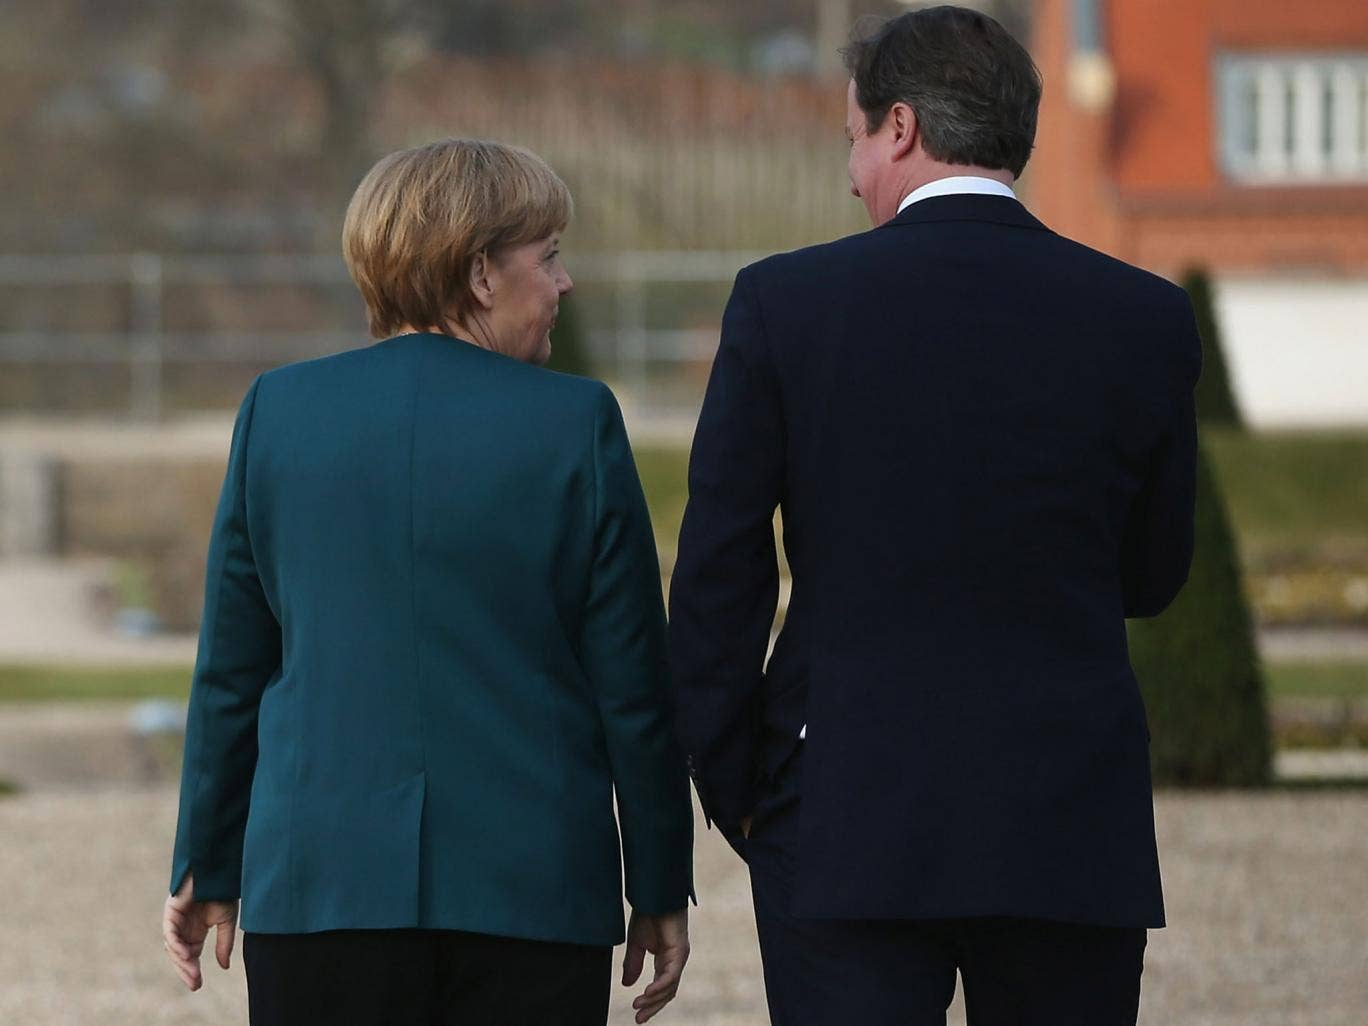 It may be possible for the Prime Minister to come to some agreement with Angela Merkel over the EU that could be presented as a diplomatic triumph back home